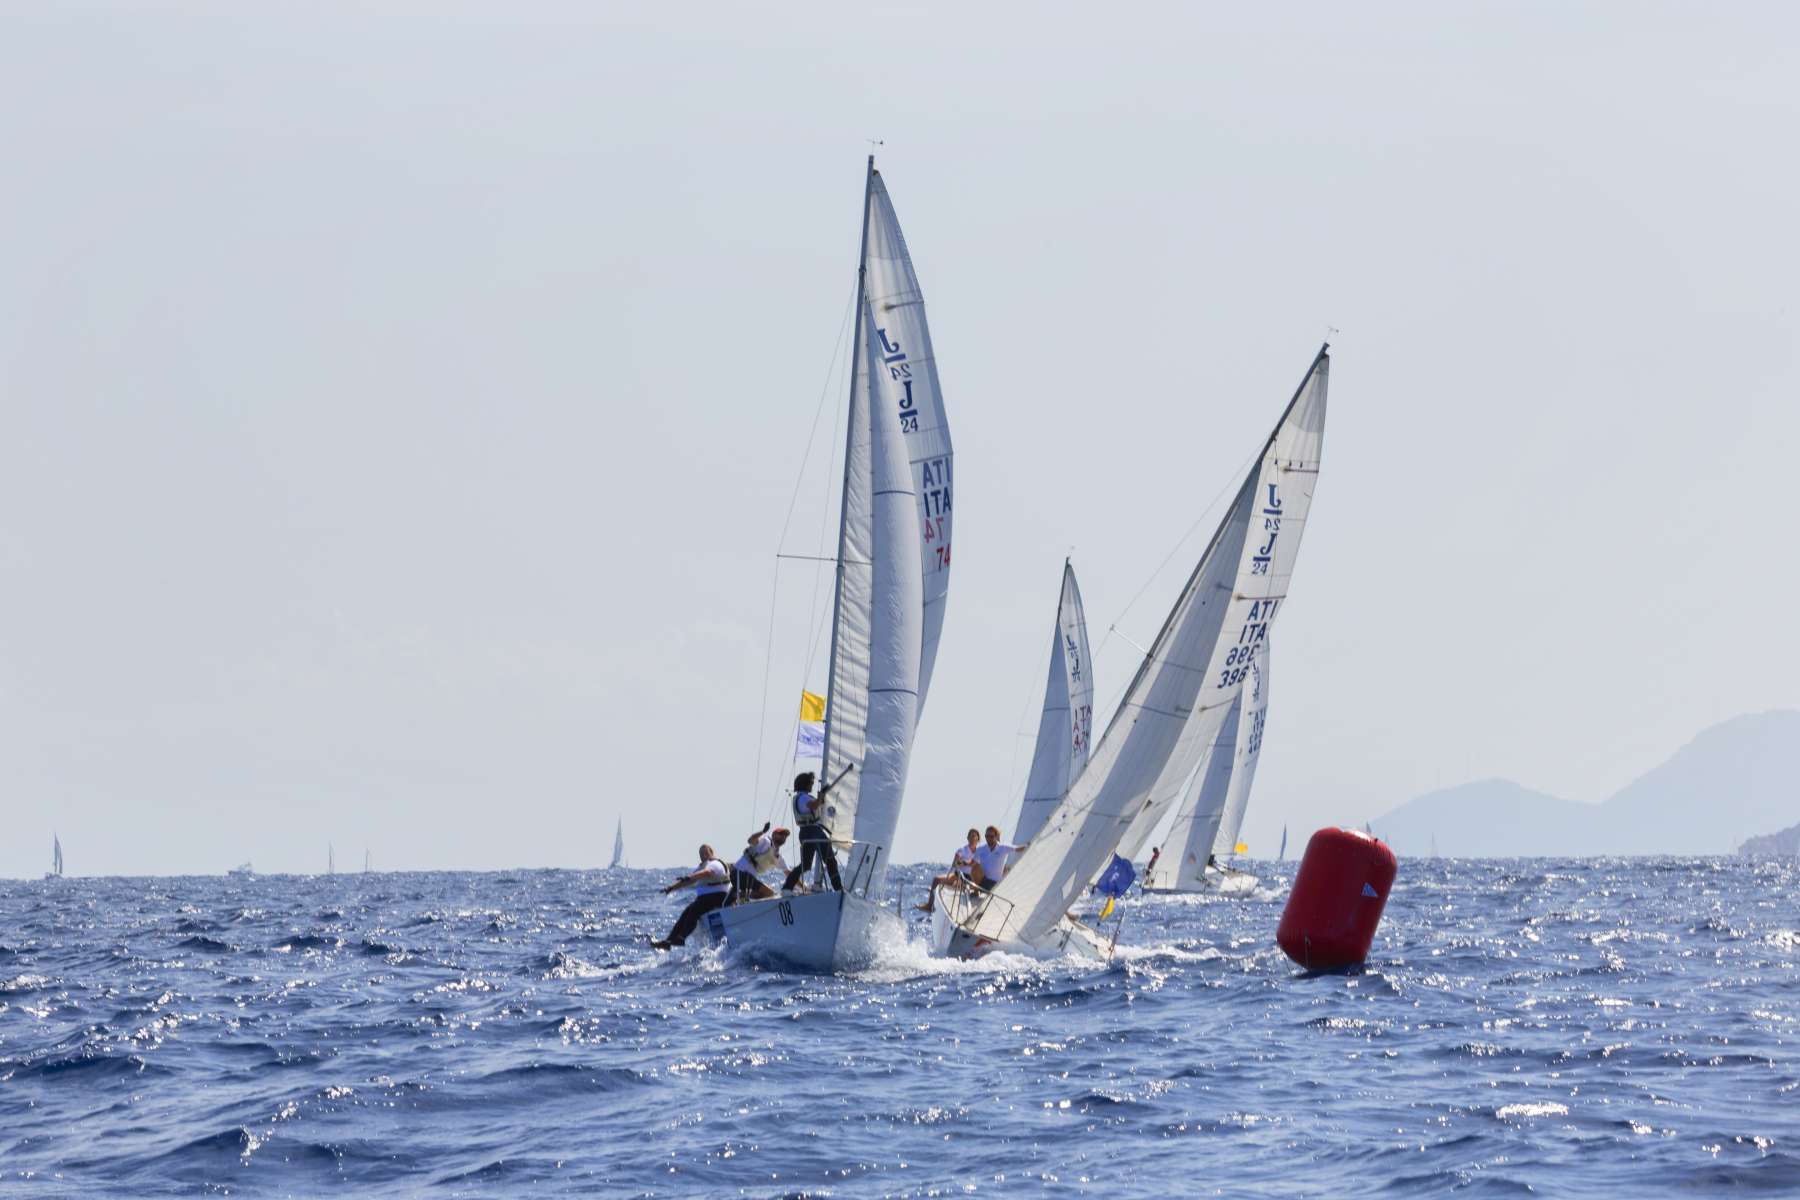 One Ocean MBA's Conference and Regatta - Porto Cervo 2019 - 4